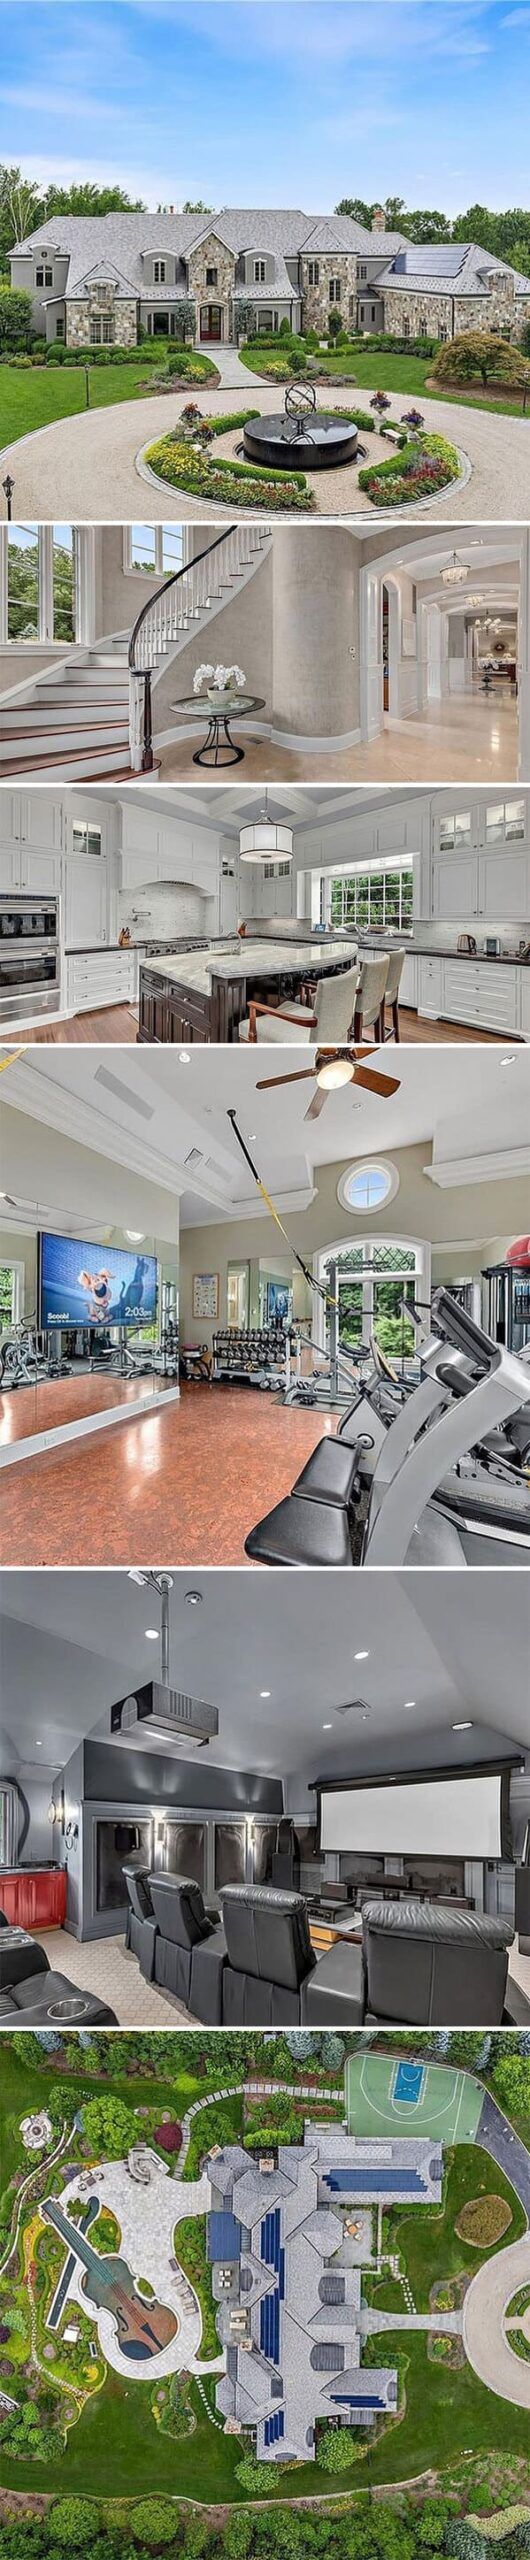 House with violin pool, Zillow gone wild, weird and funny real estate listings, real estate agents who did extra, lol, funny pics of houses, ridiculous houses to buy, zillowgonewild, instagram, humor, funny pics